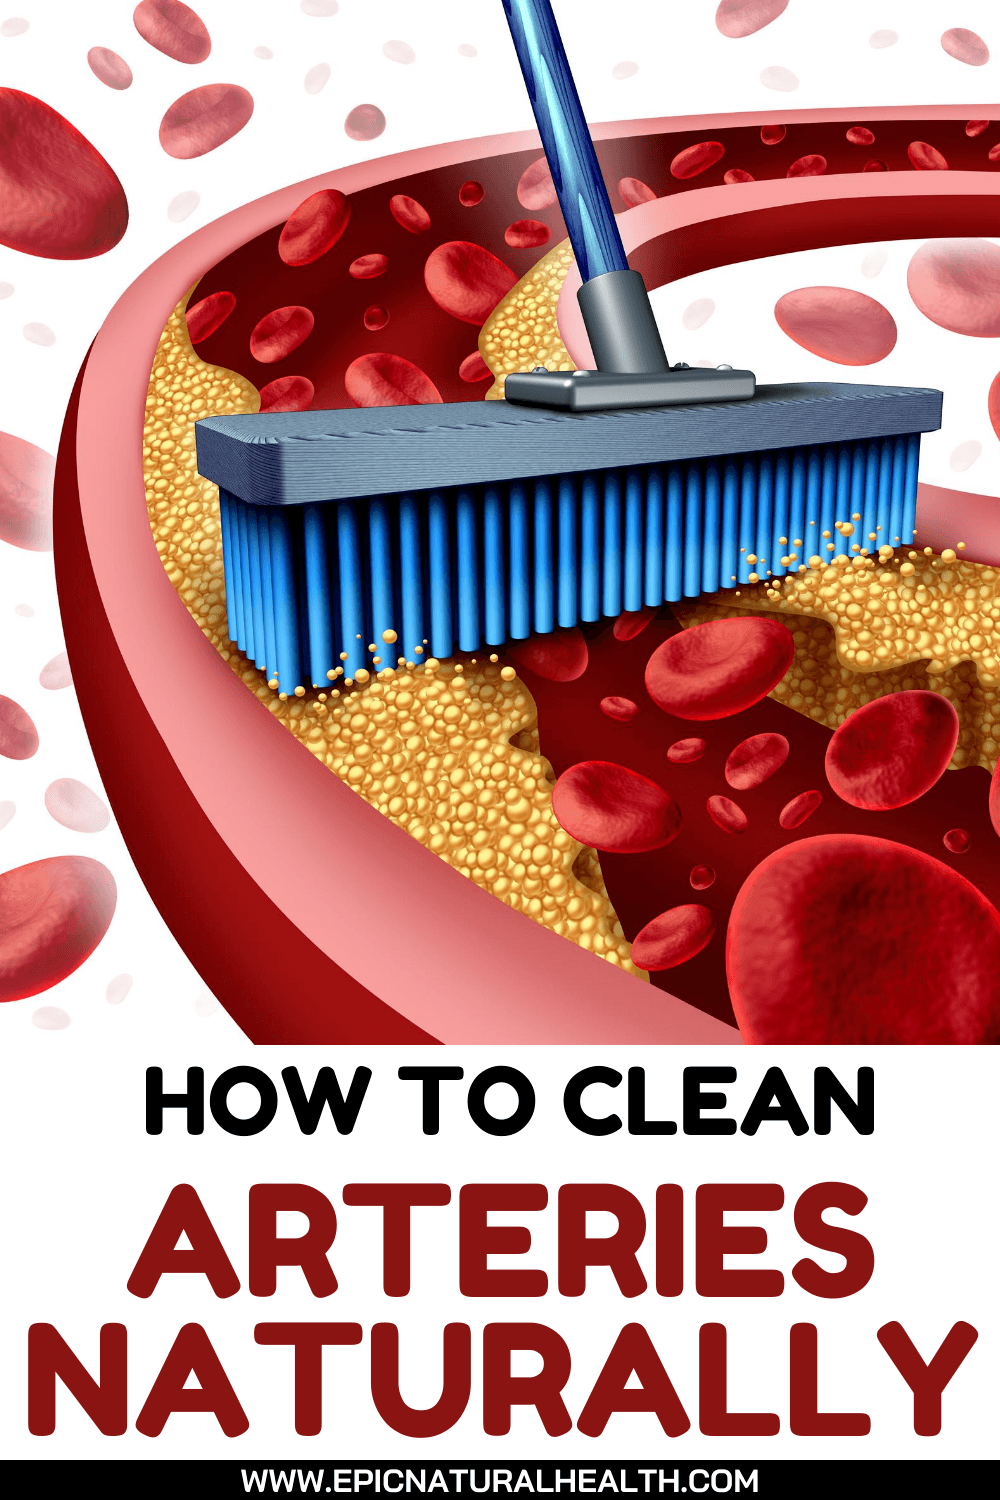 How to Clean Arteries Naturally